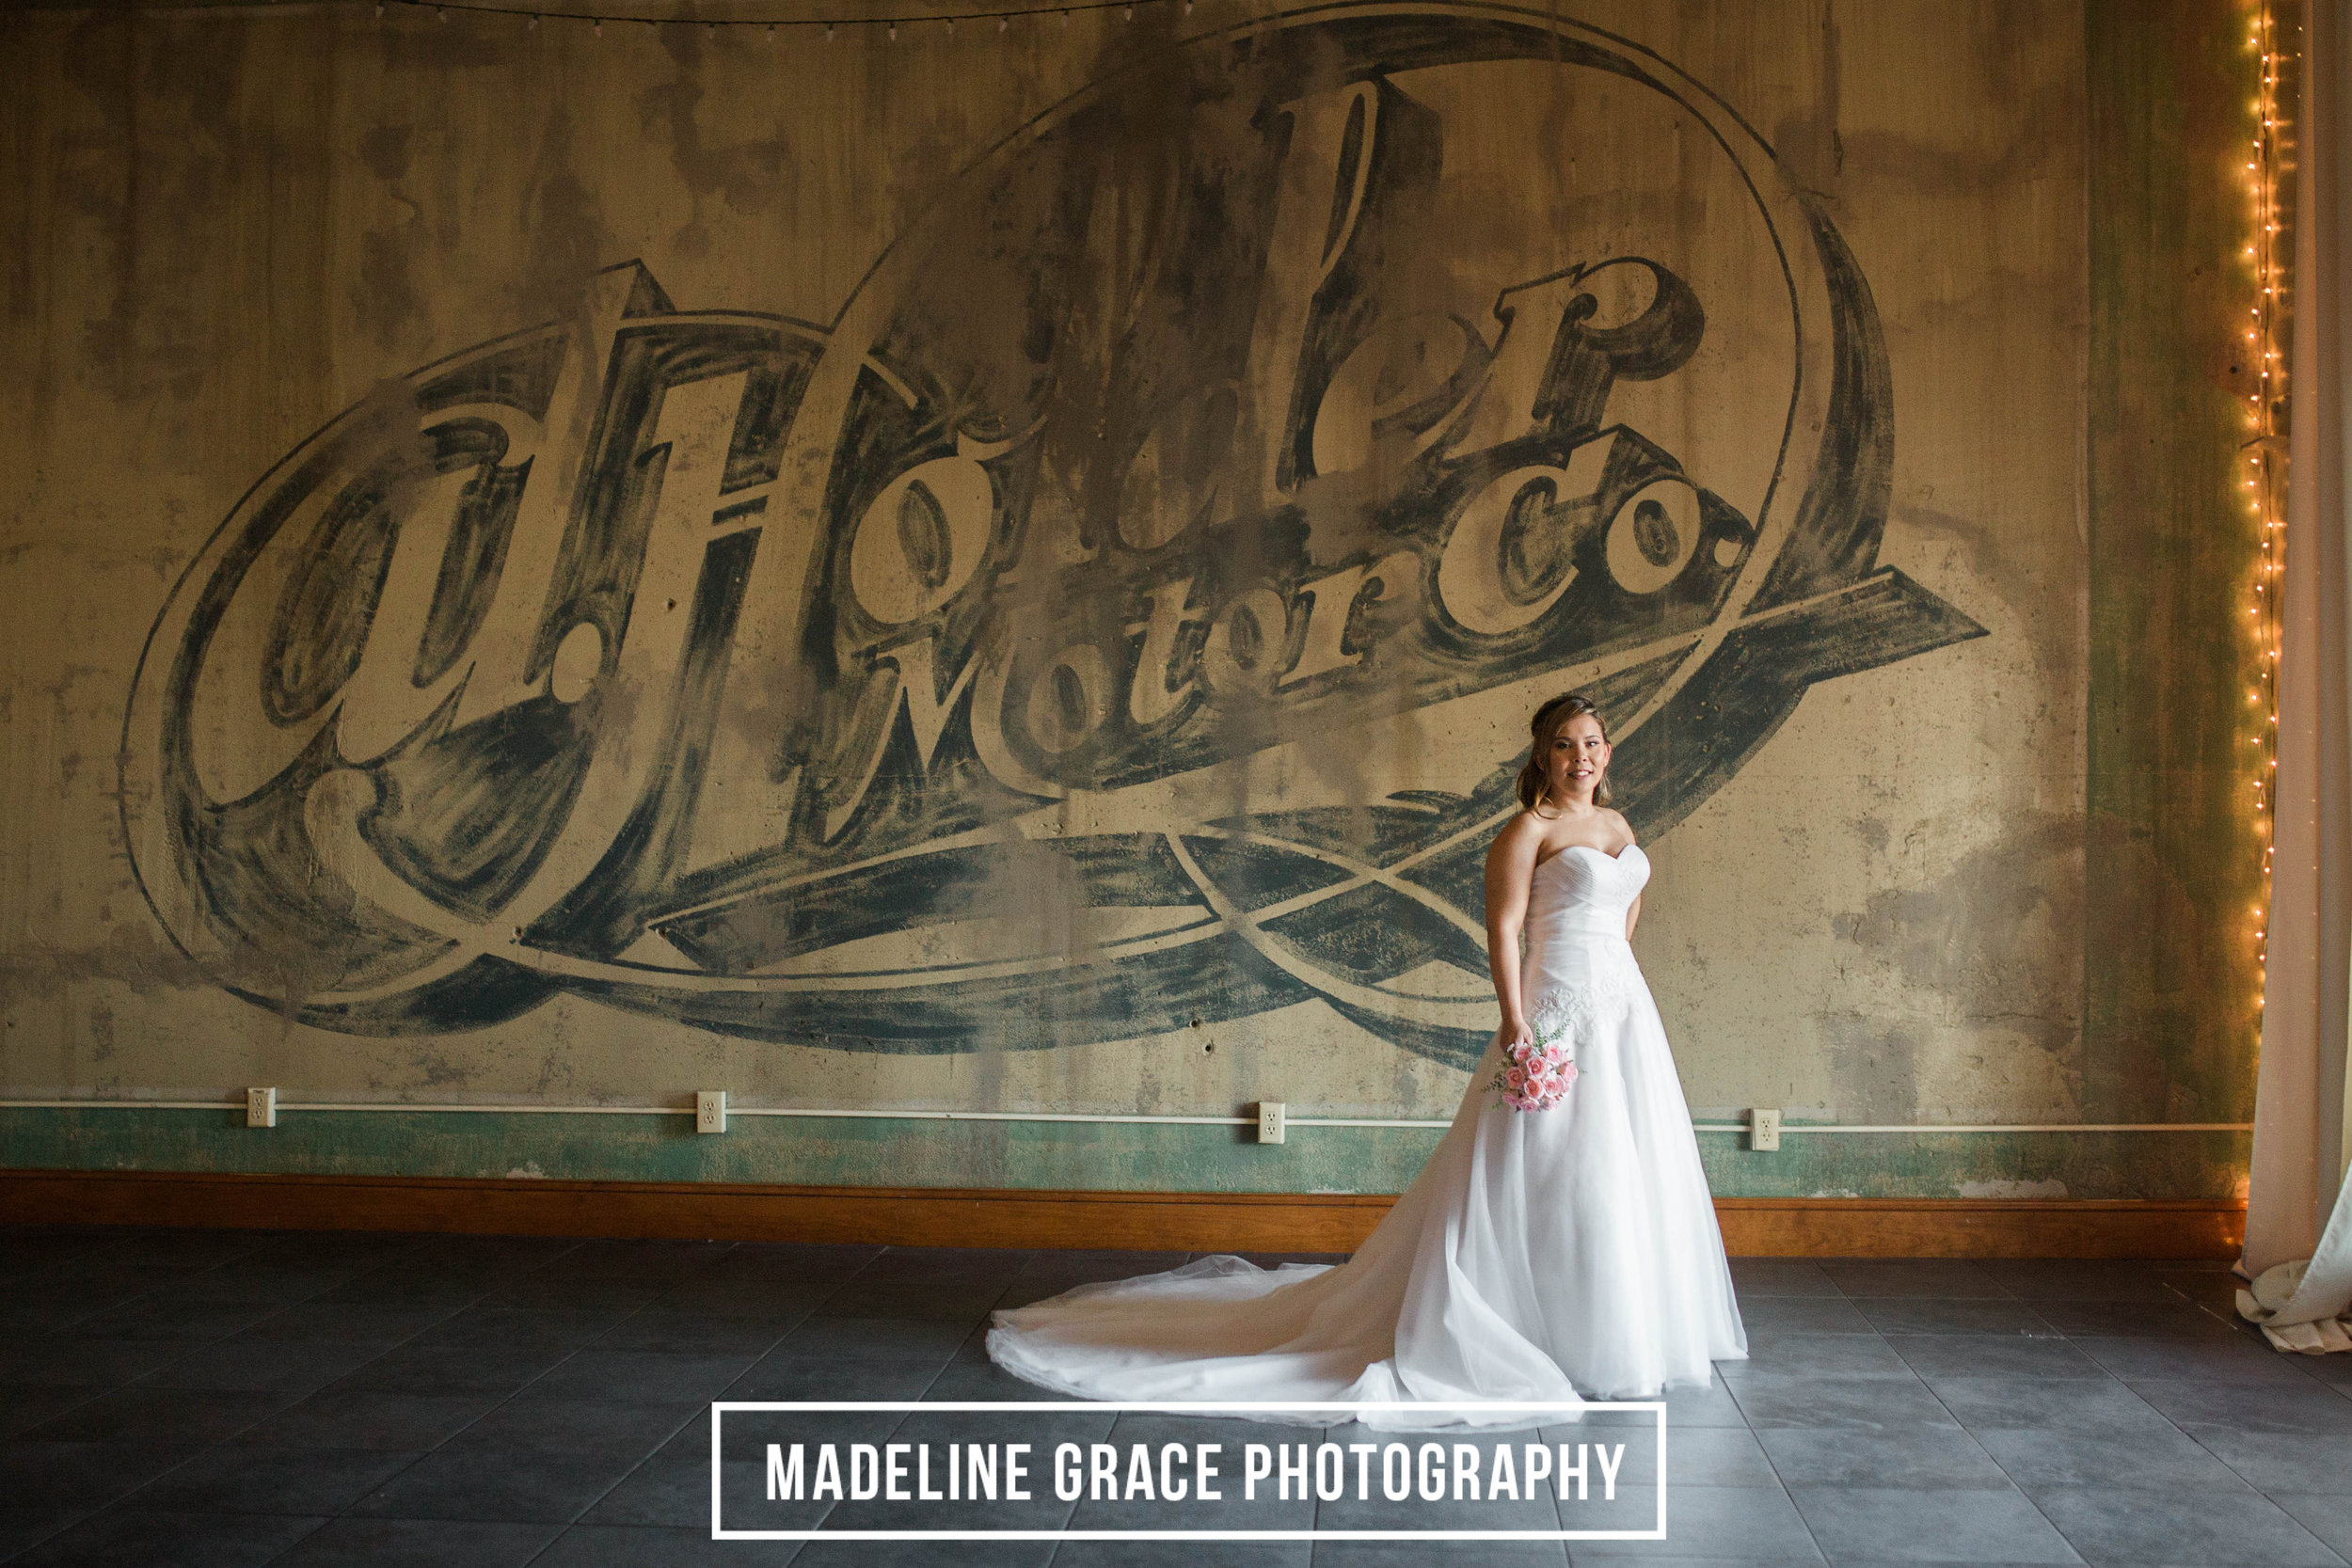 MGP-Sarah-Bridals-53 copy.jpg